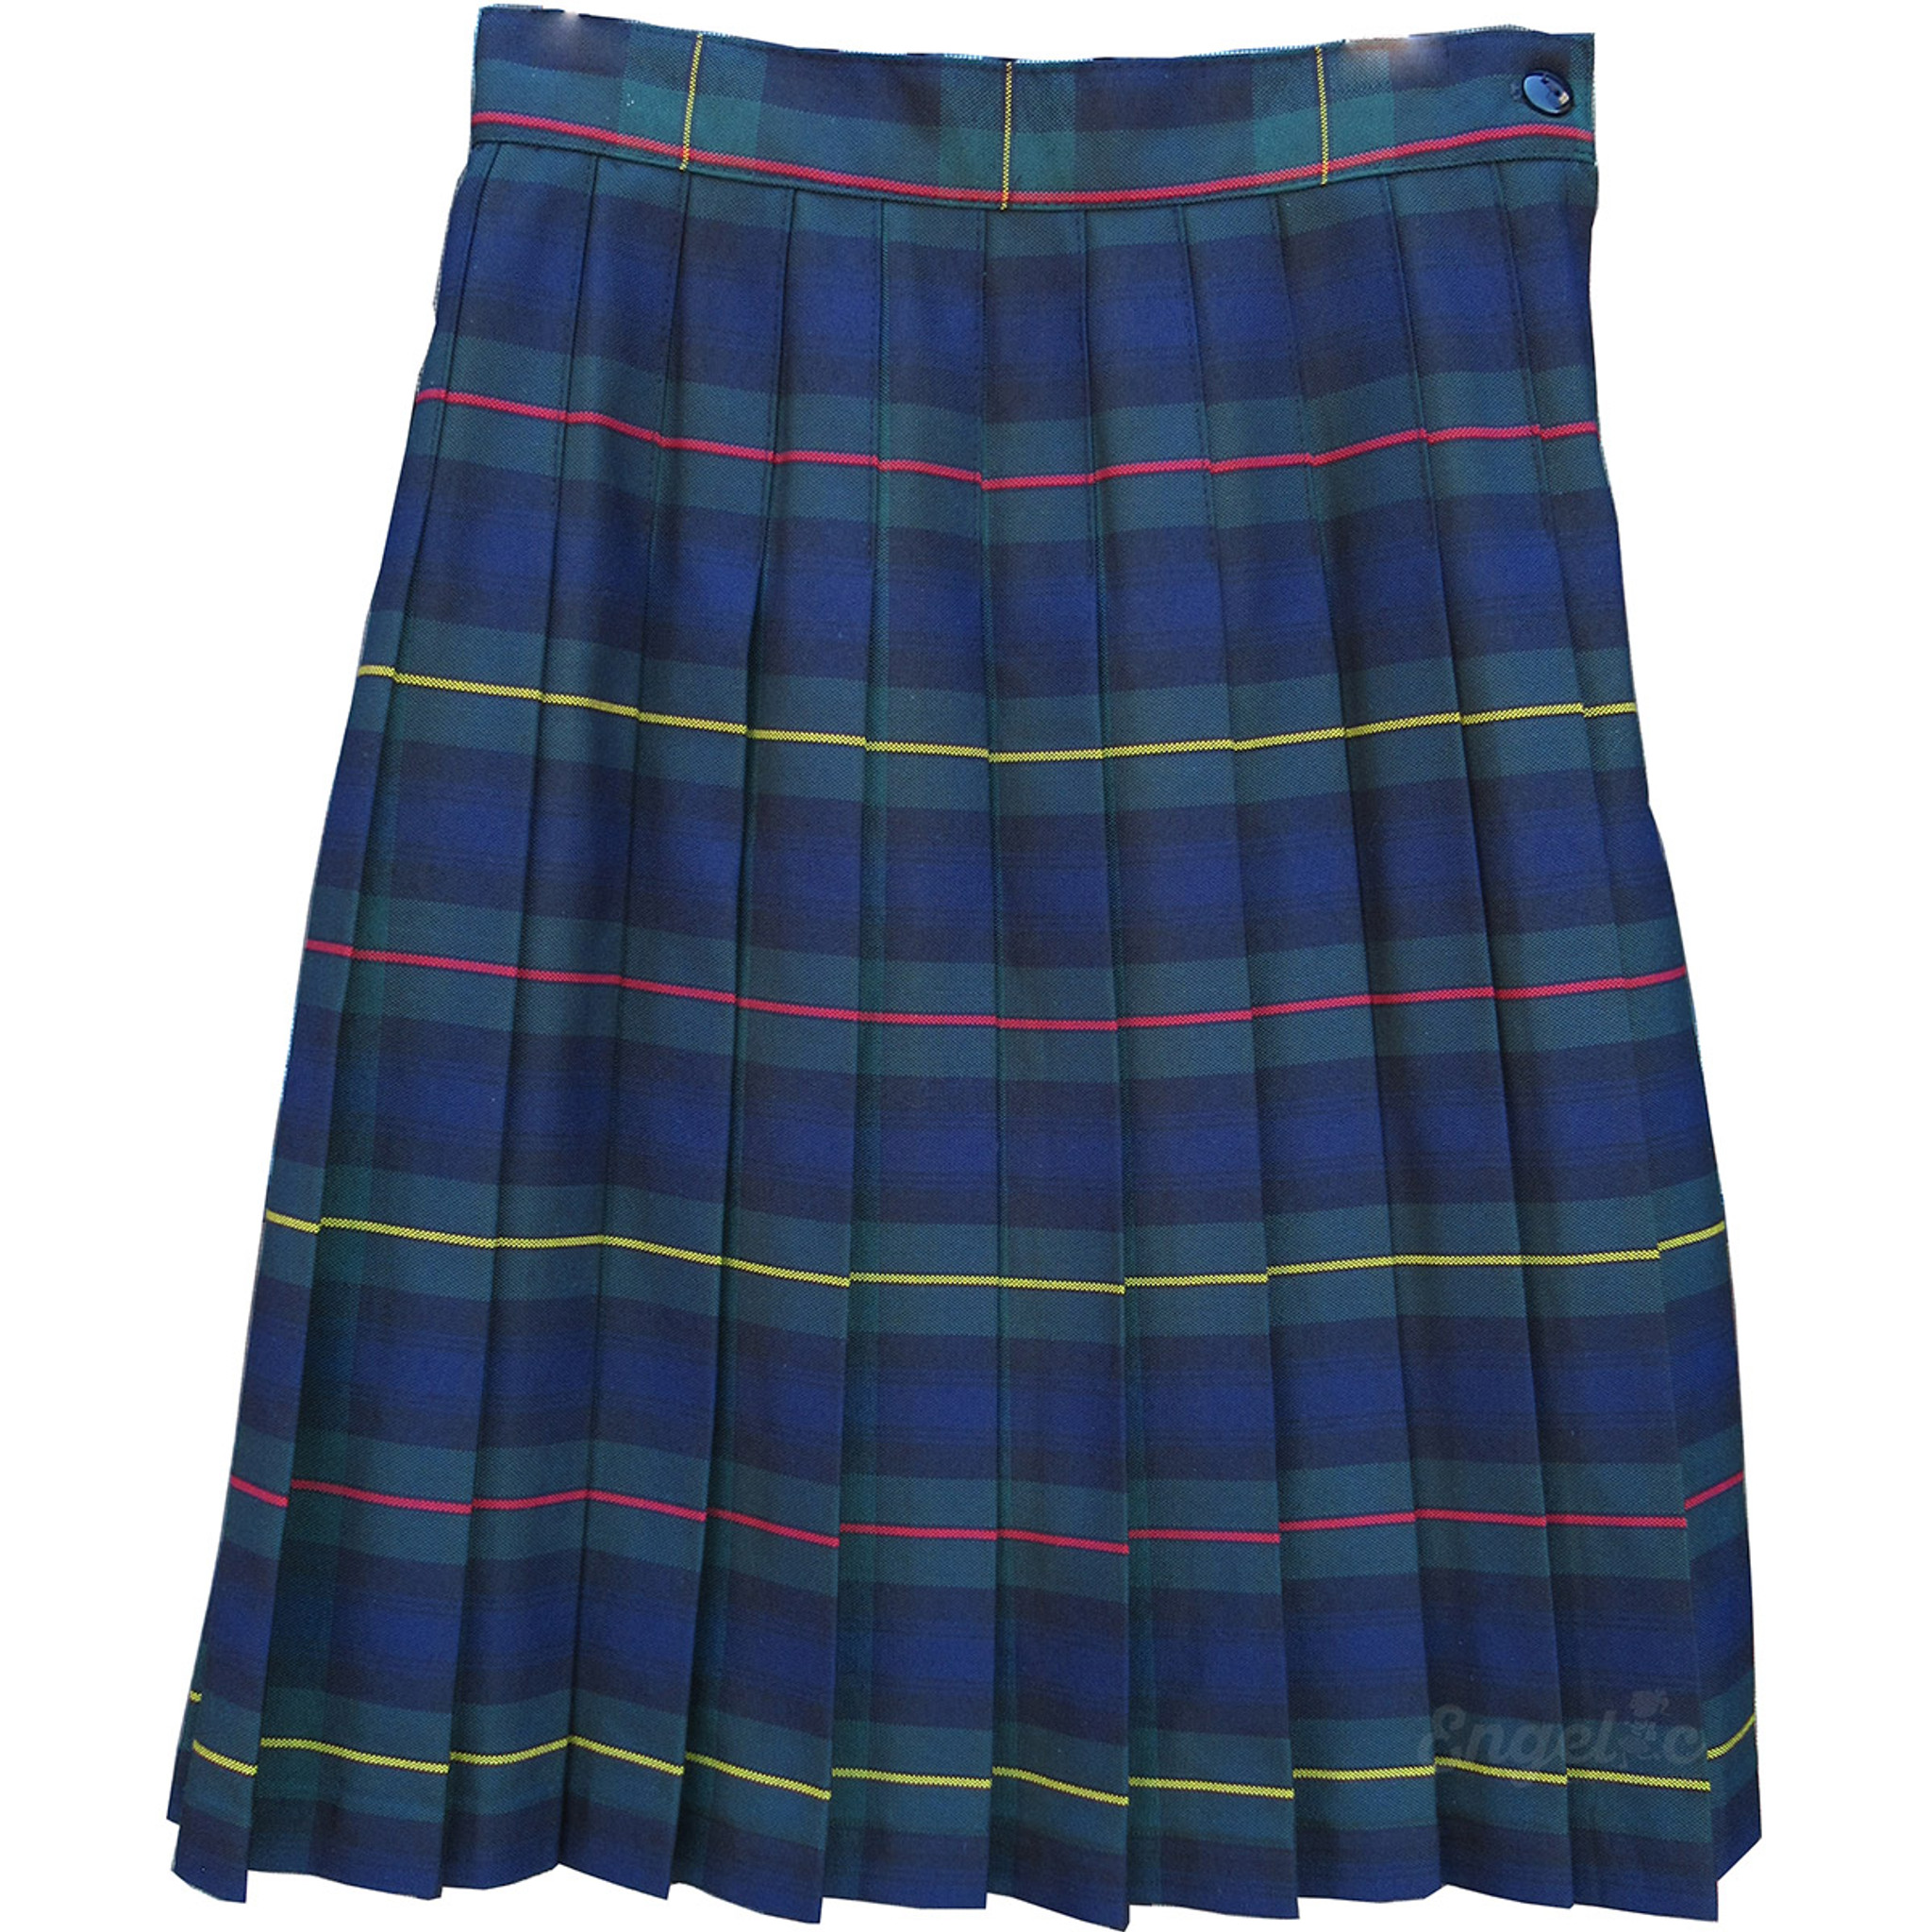 cac50d637f Girls School Uniform Pleated Skirt Plaid #83 - Engelic Uniforms